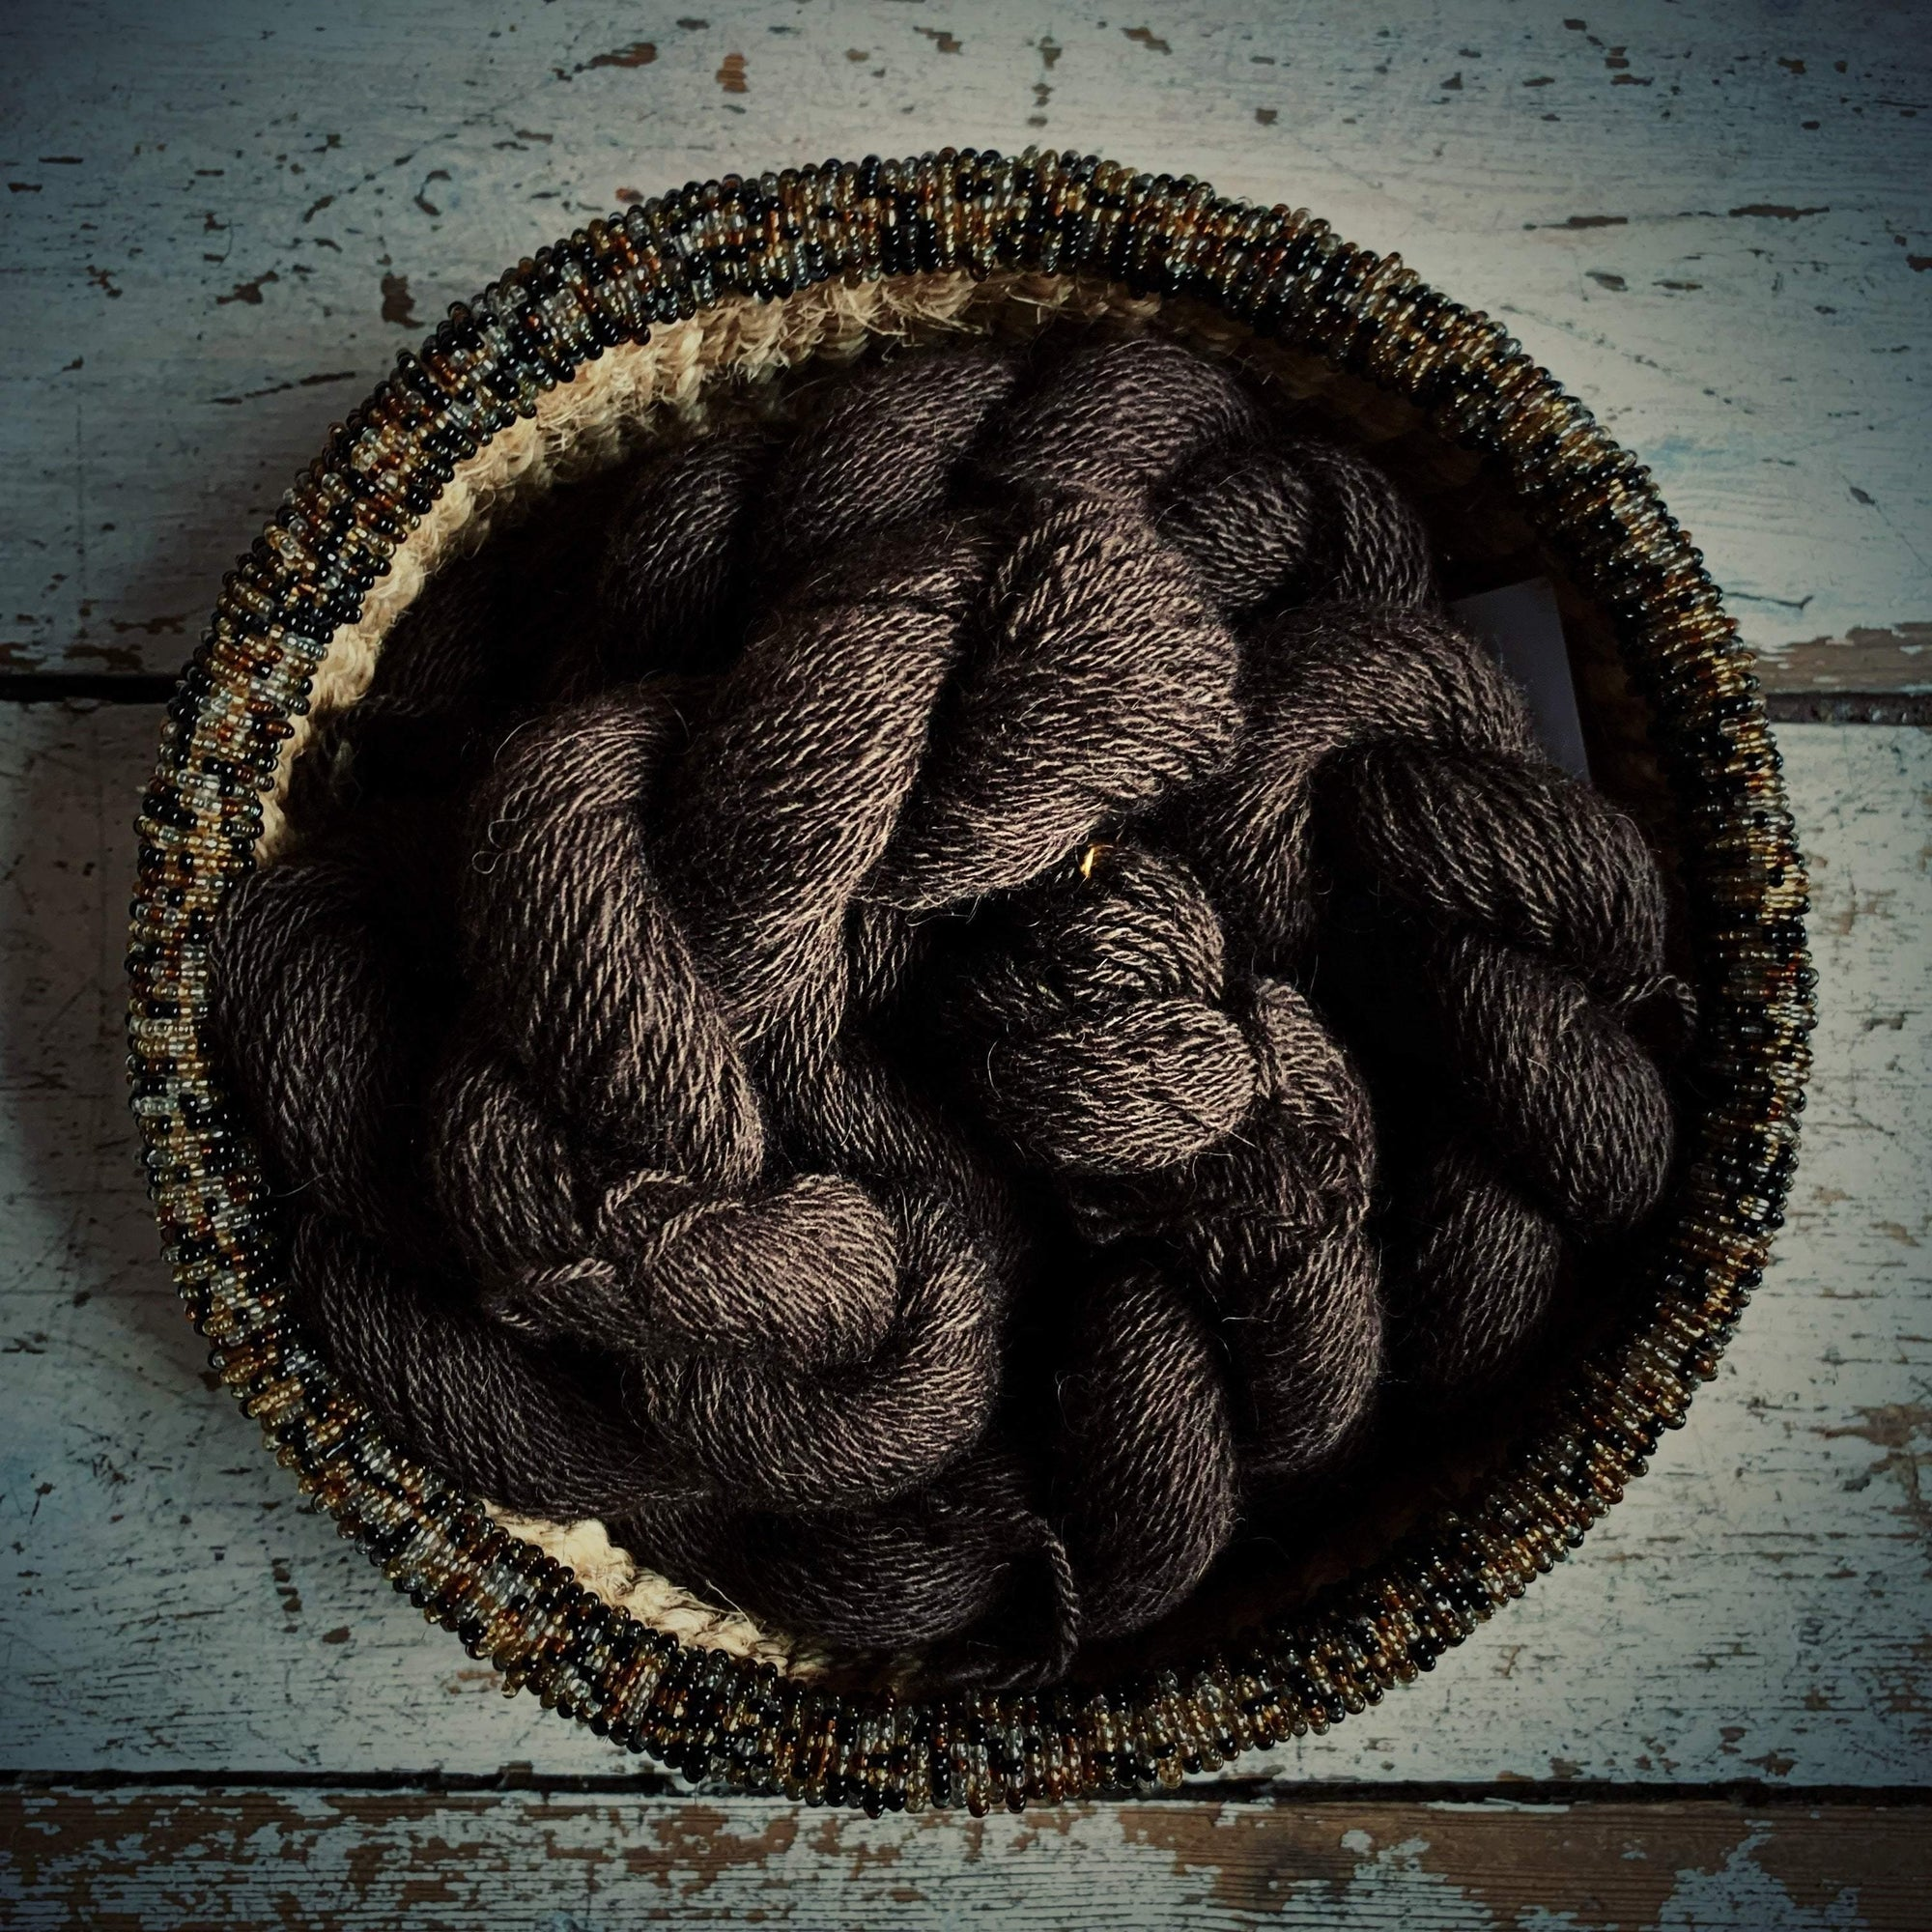 100% Bison Wool (Buffalo) Pascuali Yarn